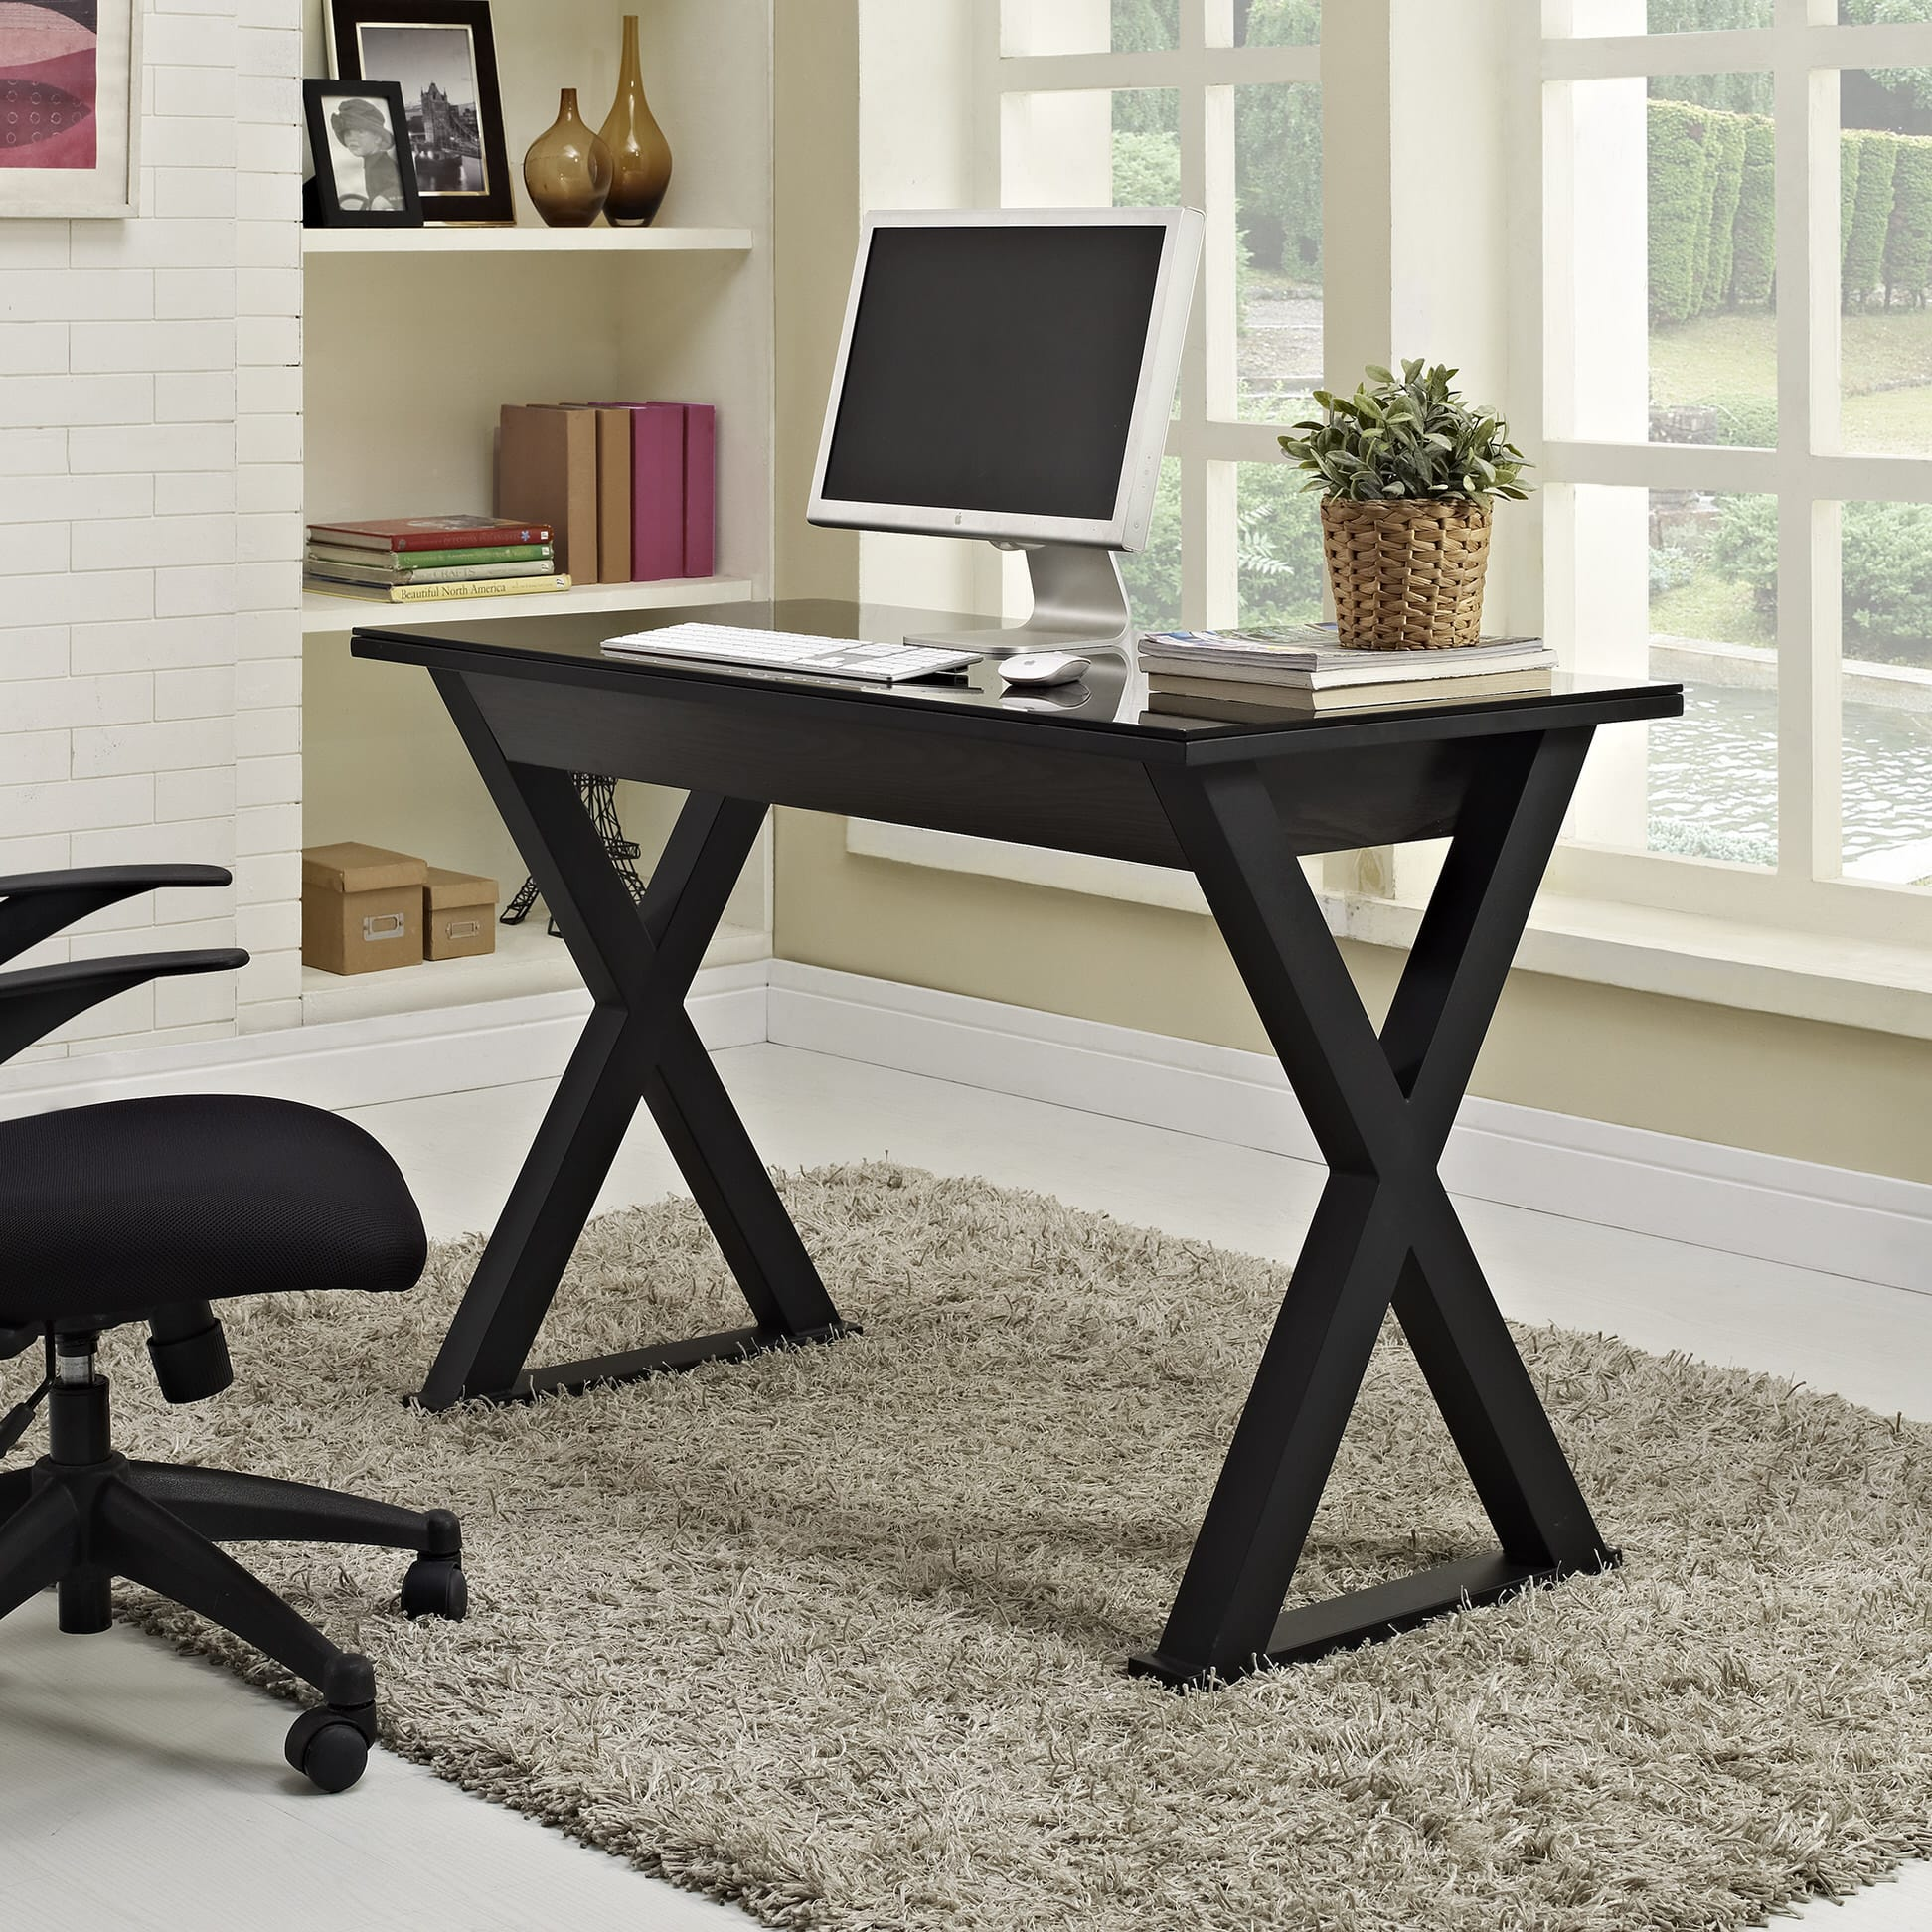 Wondrous Xtra 48 Inch Computer Desk Black By Walker Edison Beutiful Home Inspiration Semekurdistantinfo